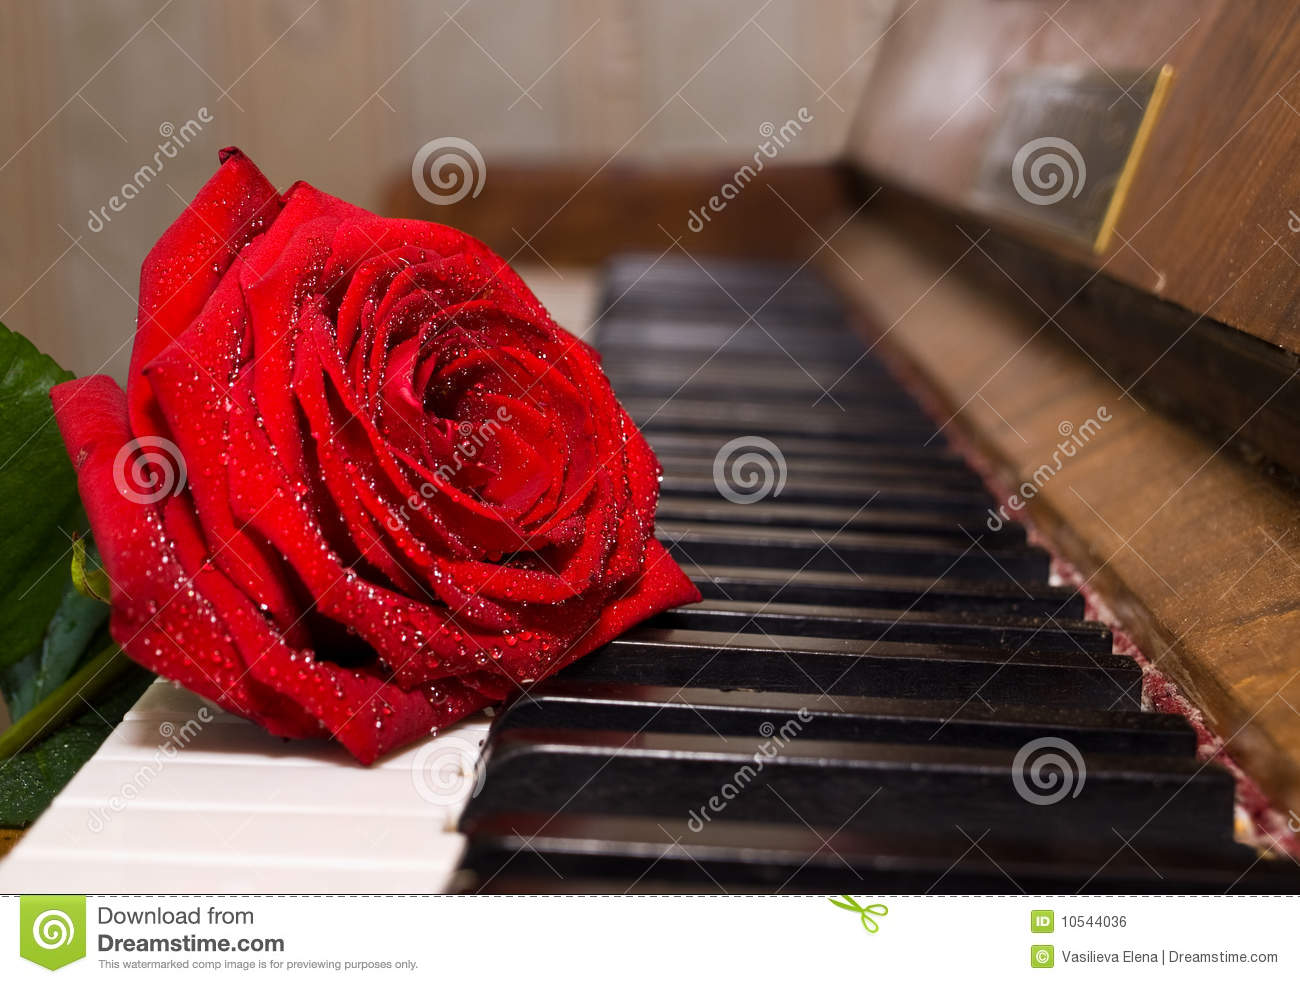 Black And White Photography Roses on Pianos Black And White Photography